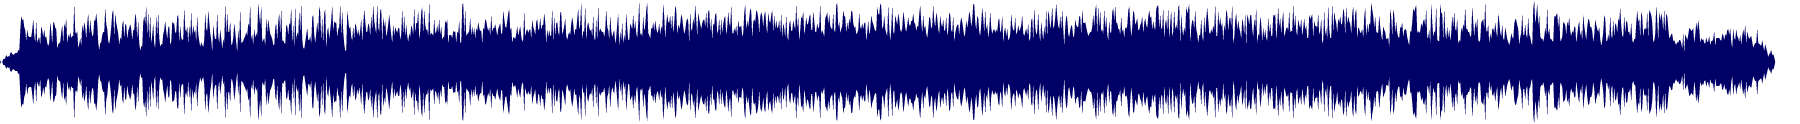 waveform of track #88556